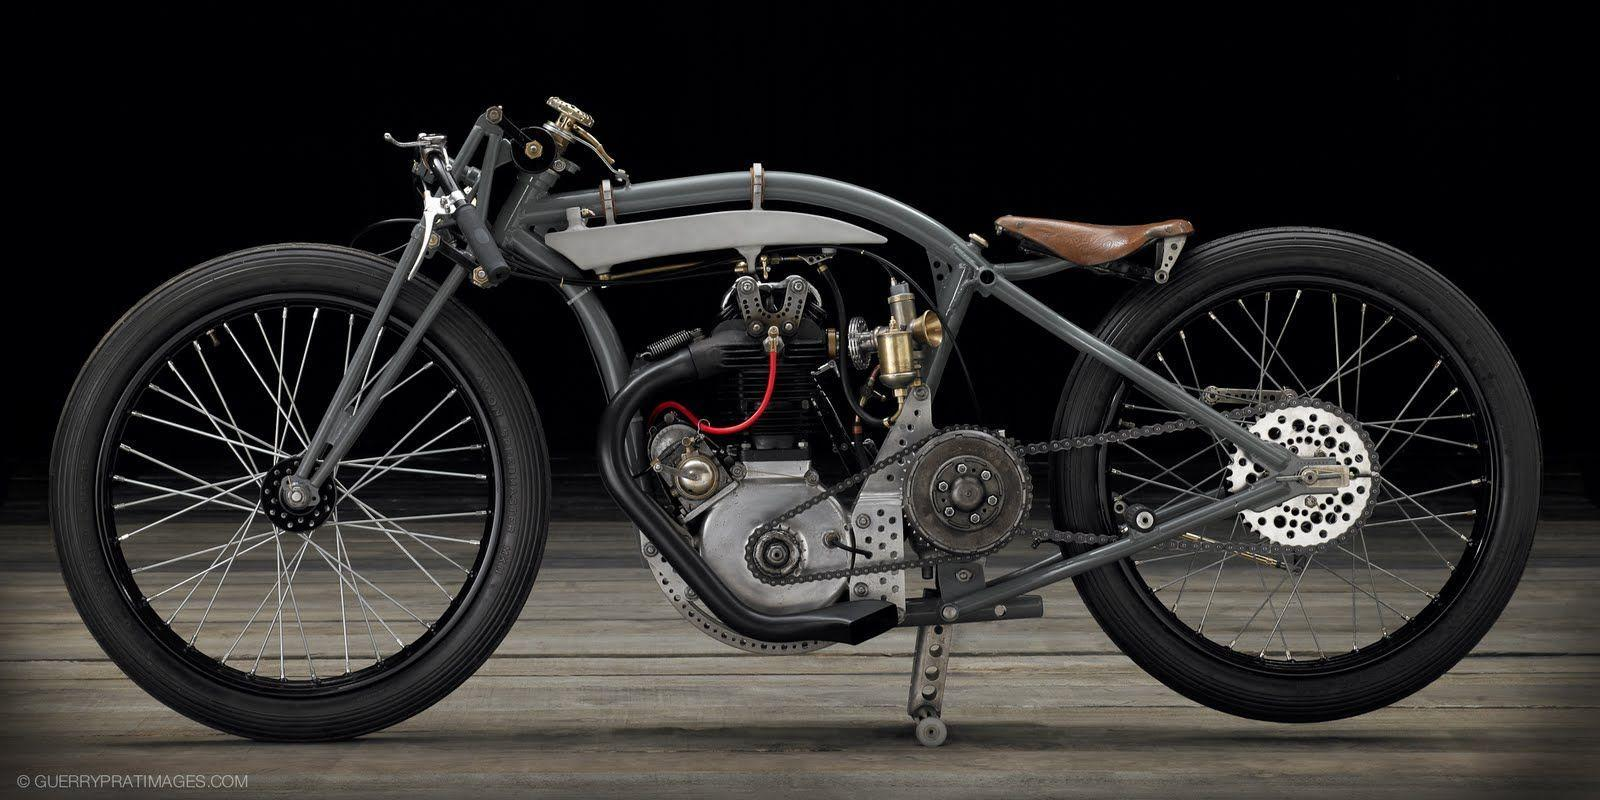 BMW vintage motorcycle picture wallpapers 7